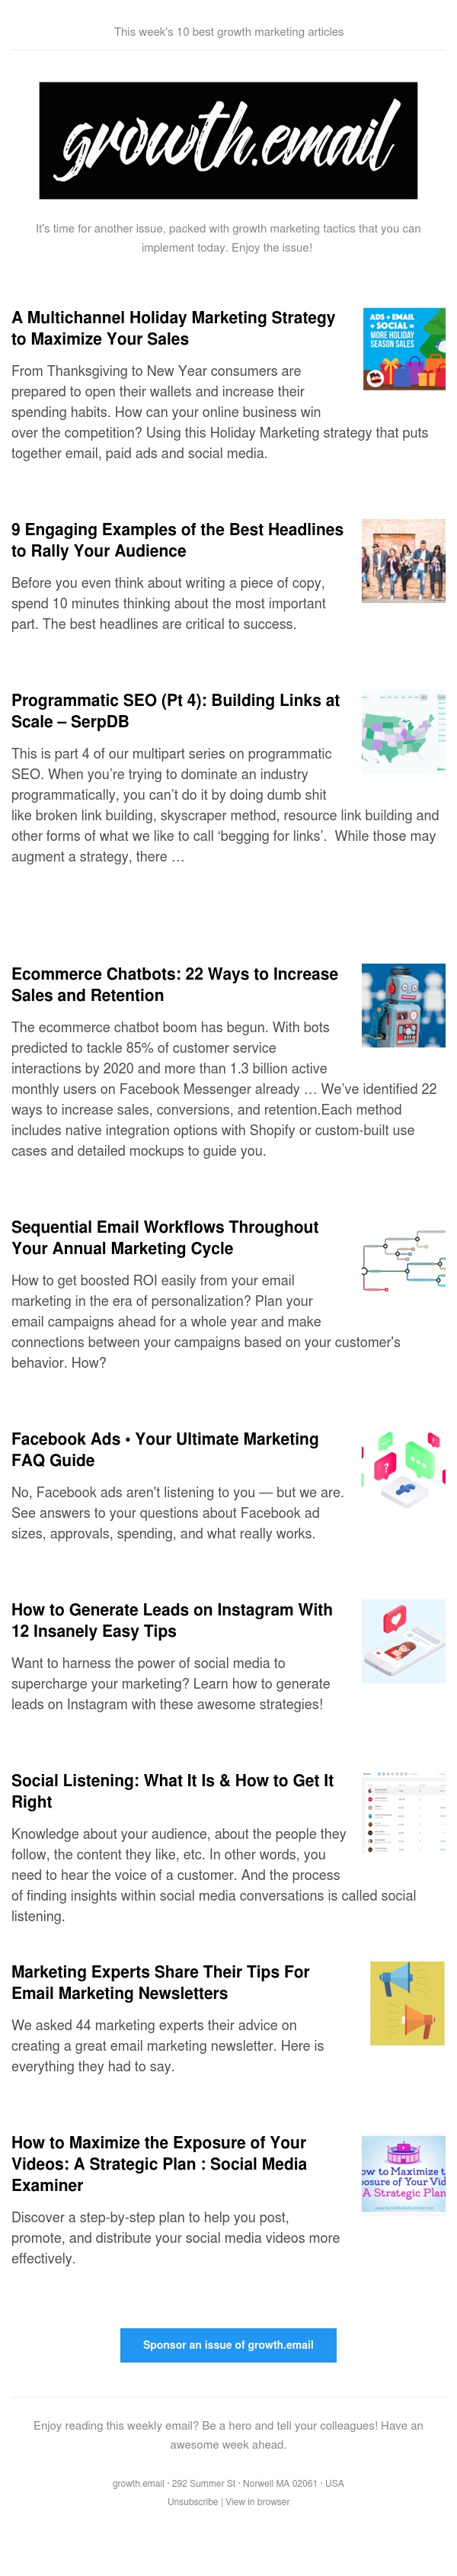 growth.email #85 Holiday Marketing Strategy To Increase Sales | Best Headlines To Rally Your Audience | Building Links at Scale | 22 Ways To Increase Sales and Retention